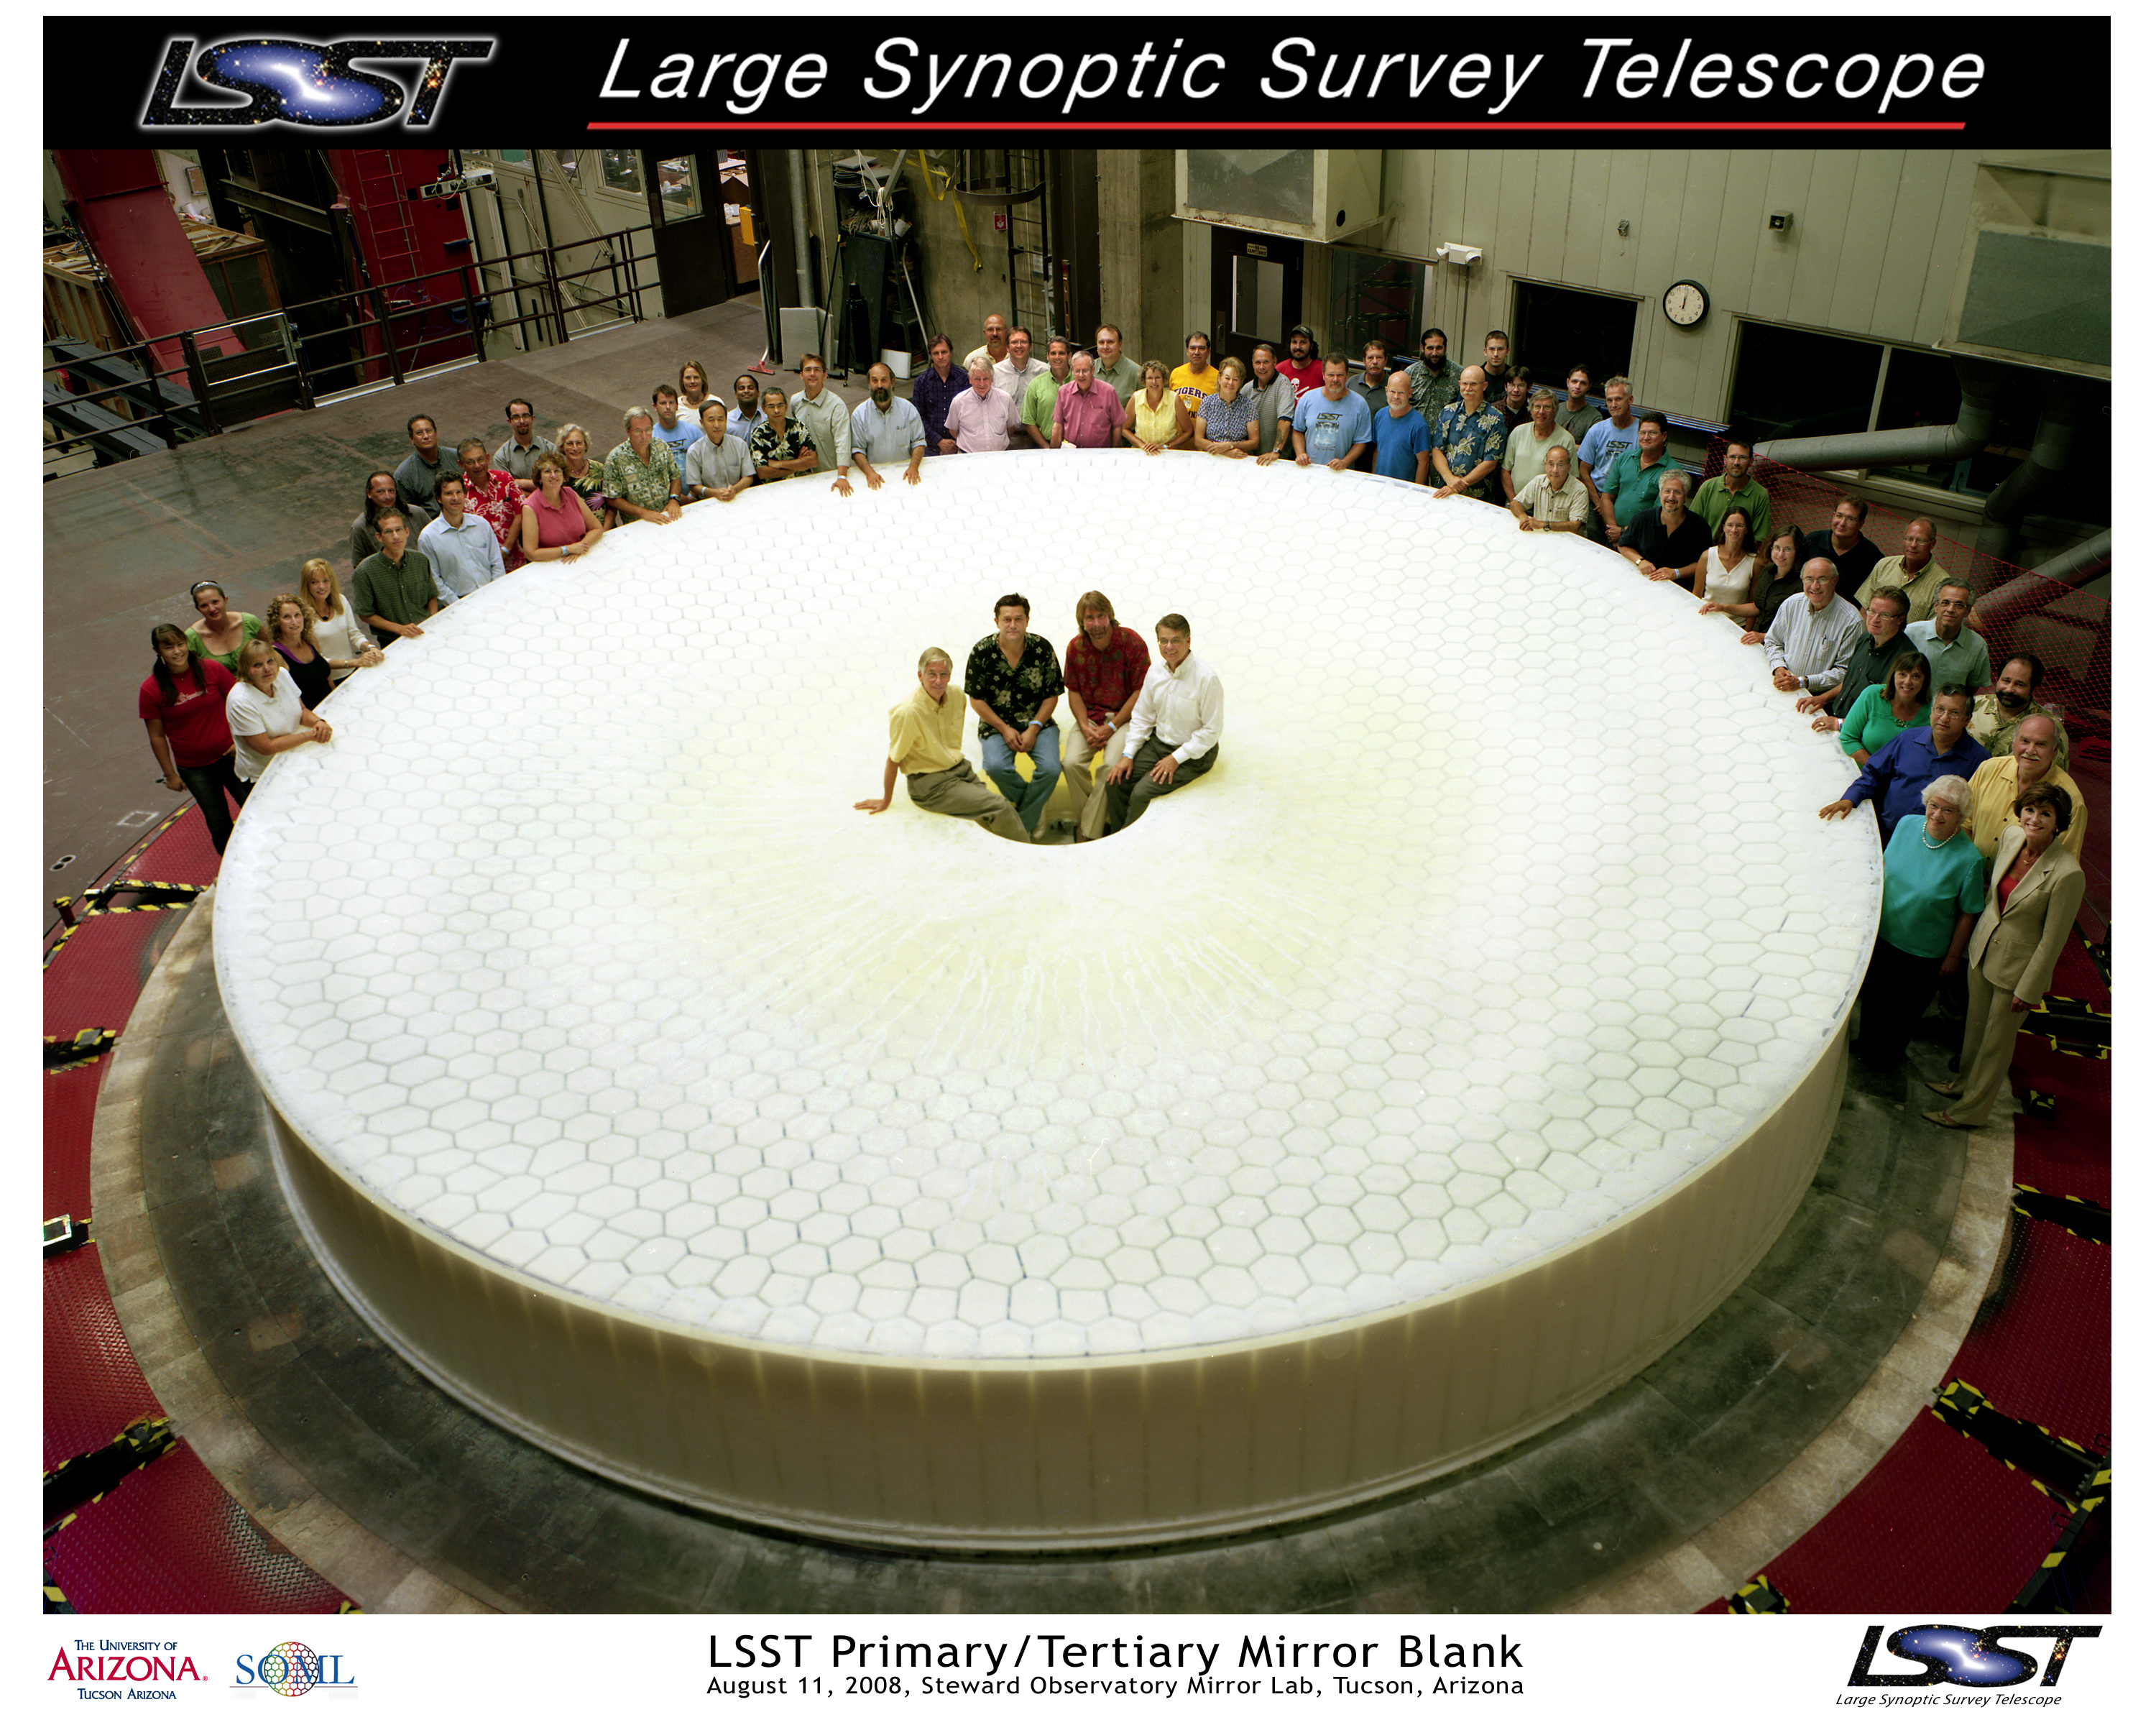 BNL Newsroom | Giant Furnace Opens to Reveal 'Perfect' LSST Mirror ...